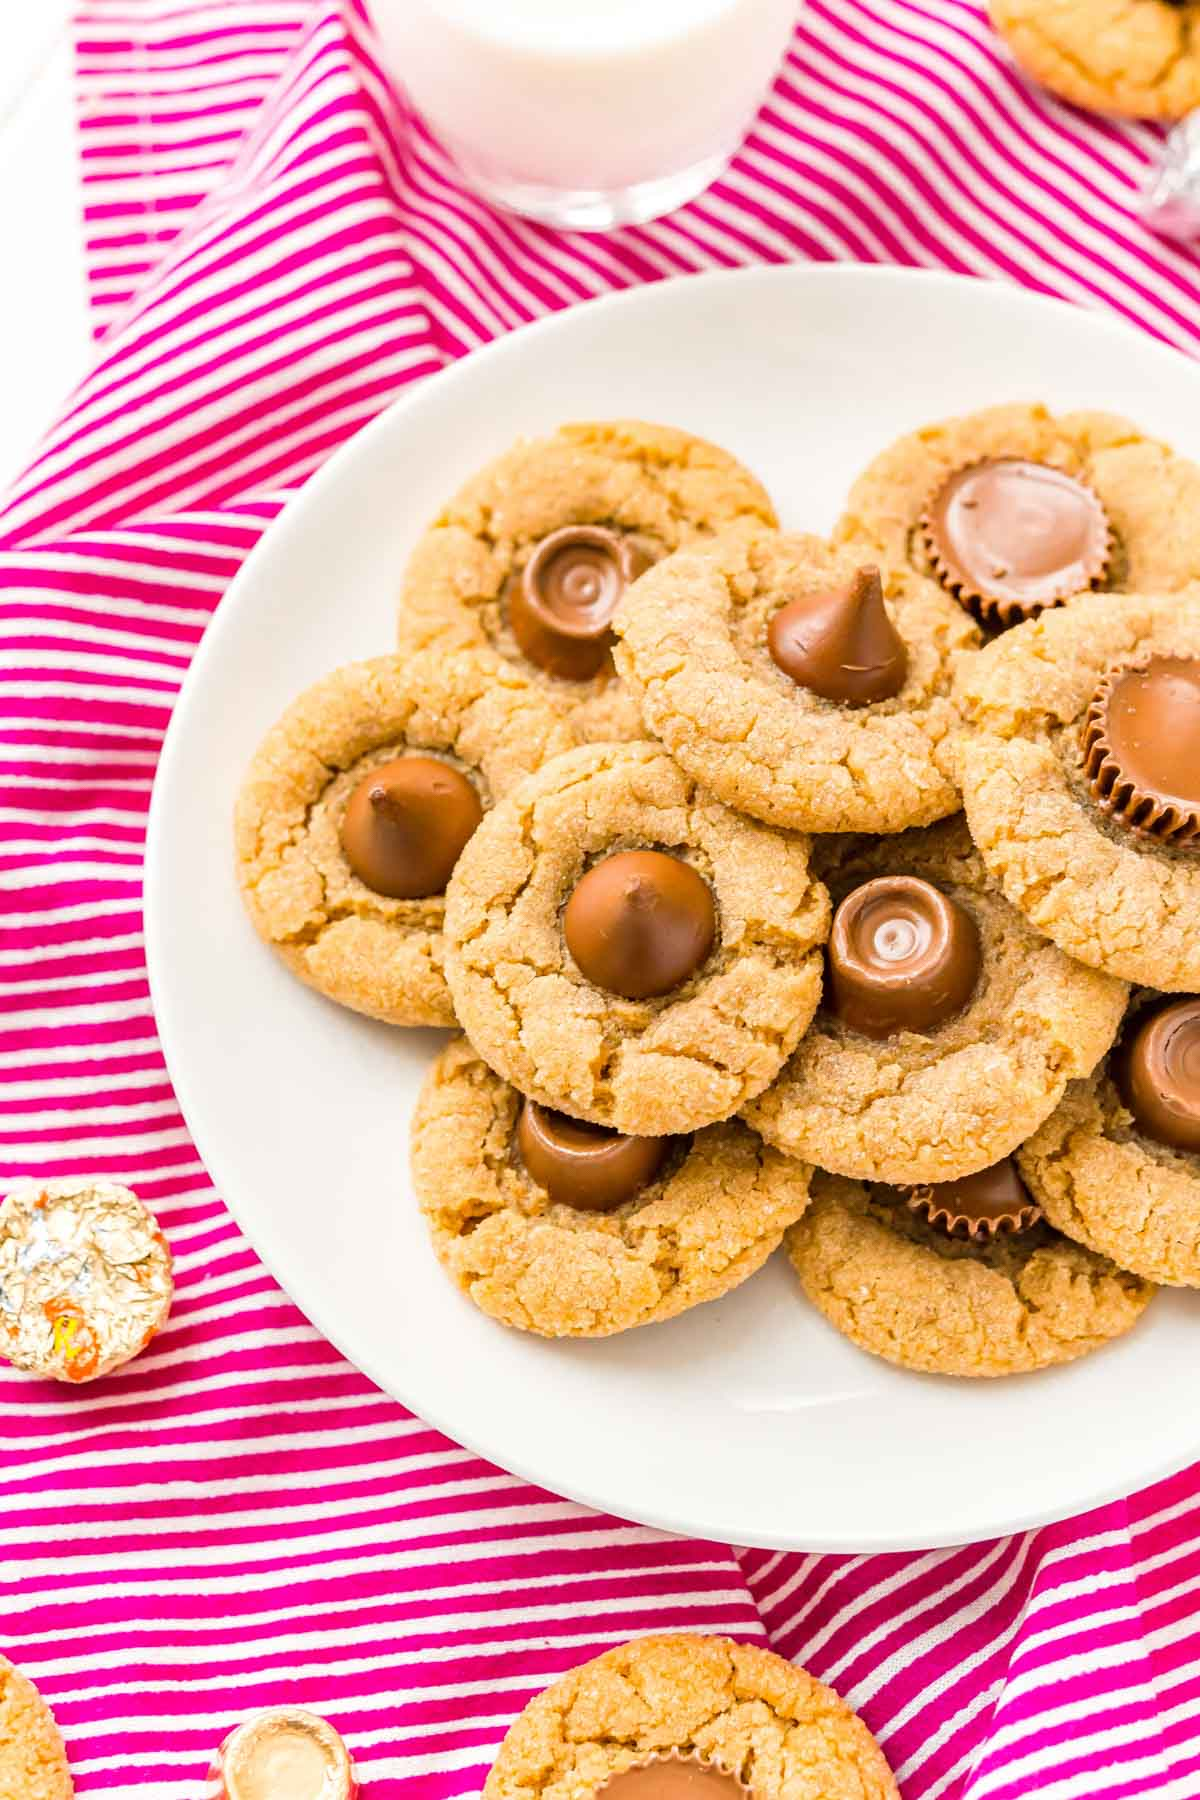 Plate full of peanut butter blossoms on a pink background